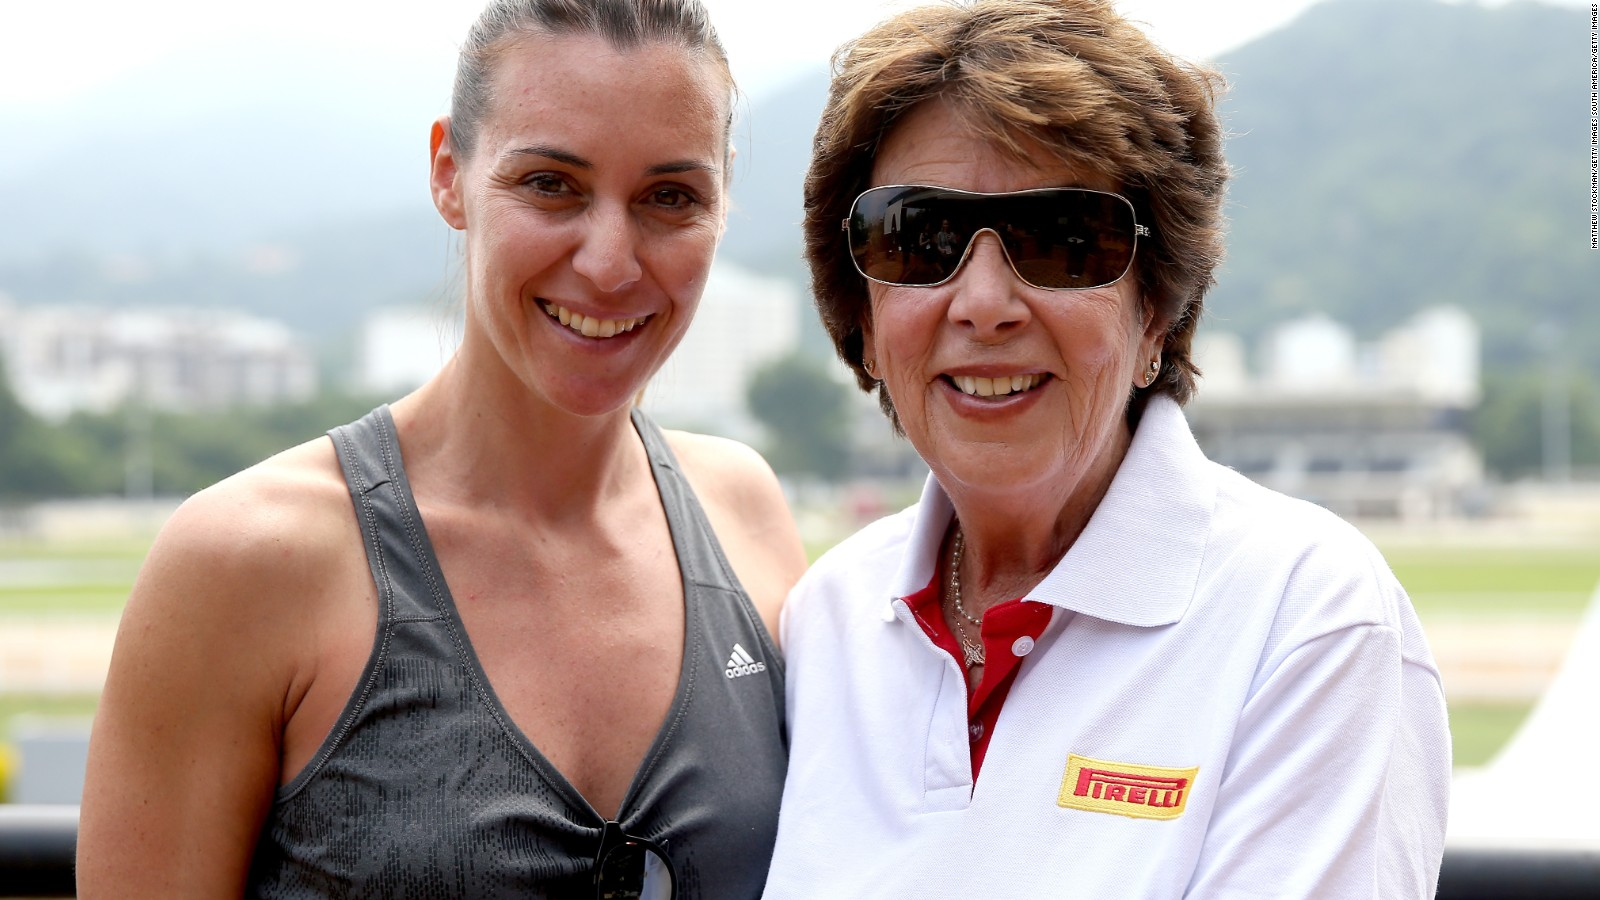 Maria Bueno The grand slam champion who played with Princess